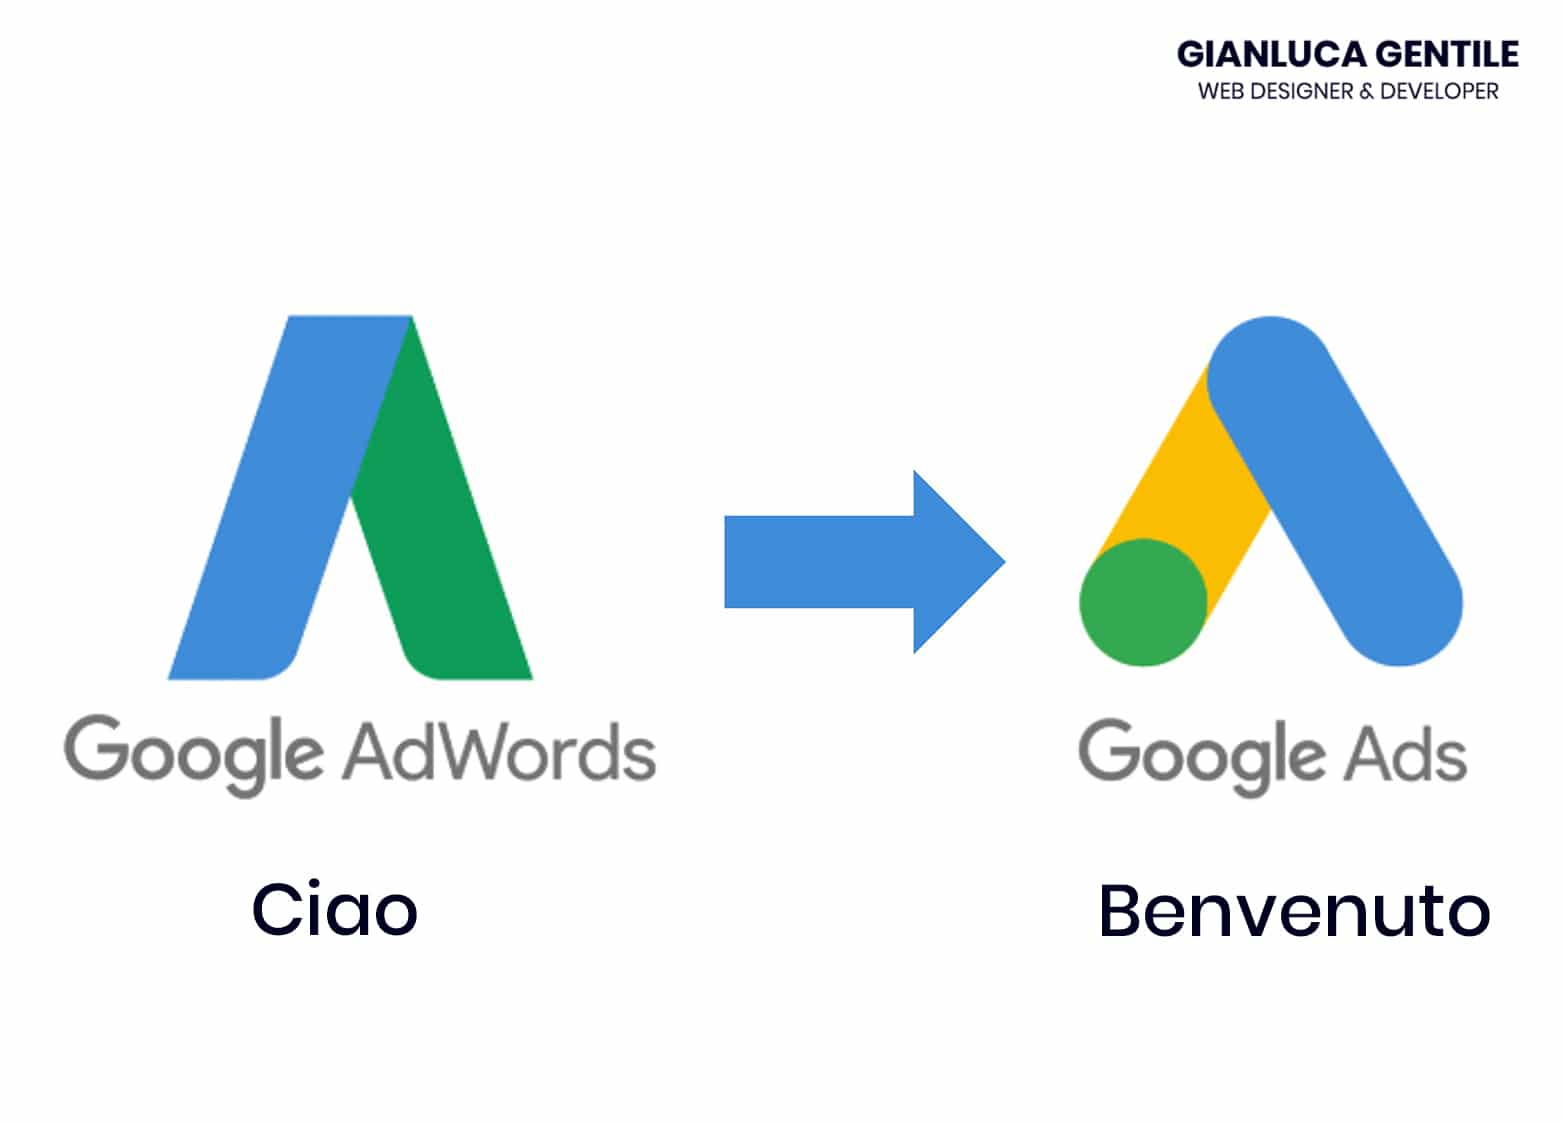 nuova interfaccia google adwords - Nuova interfaccia Google Adwords diventa Google Ads - Nuova interfaccia Google Adwords diventa Google Ads